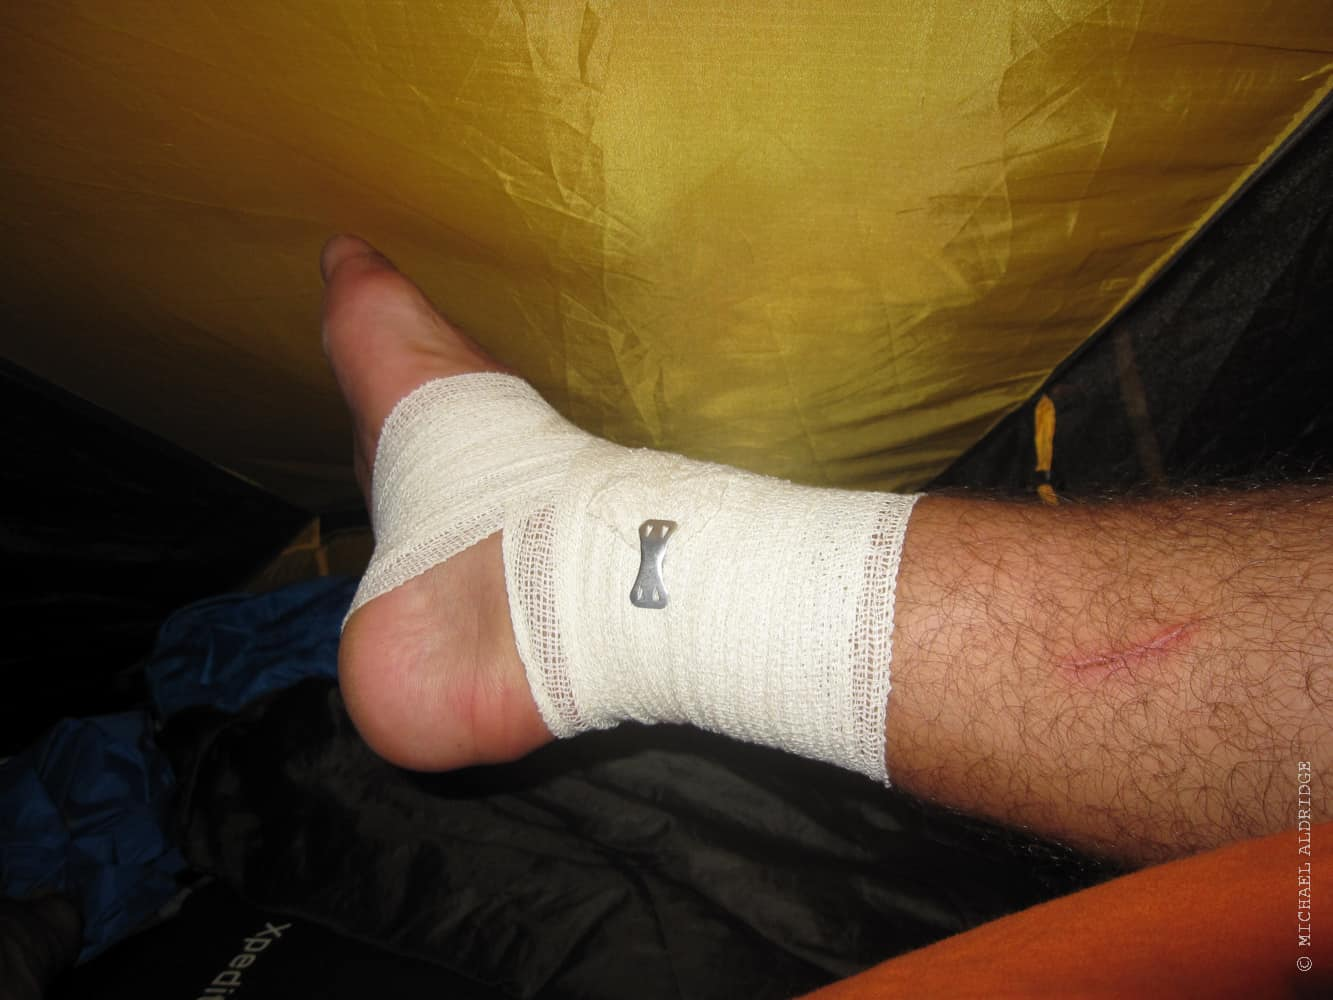 Ankle Injury during the bike trip